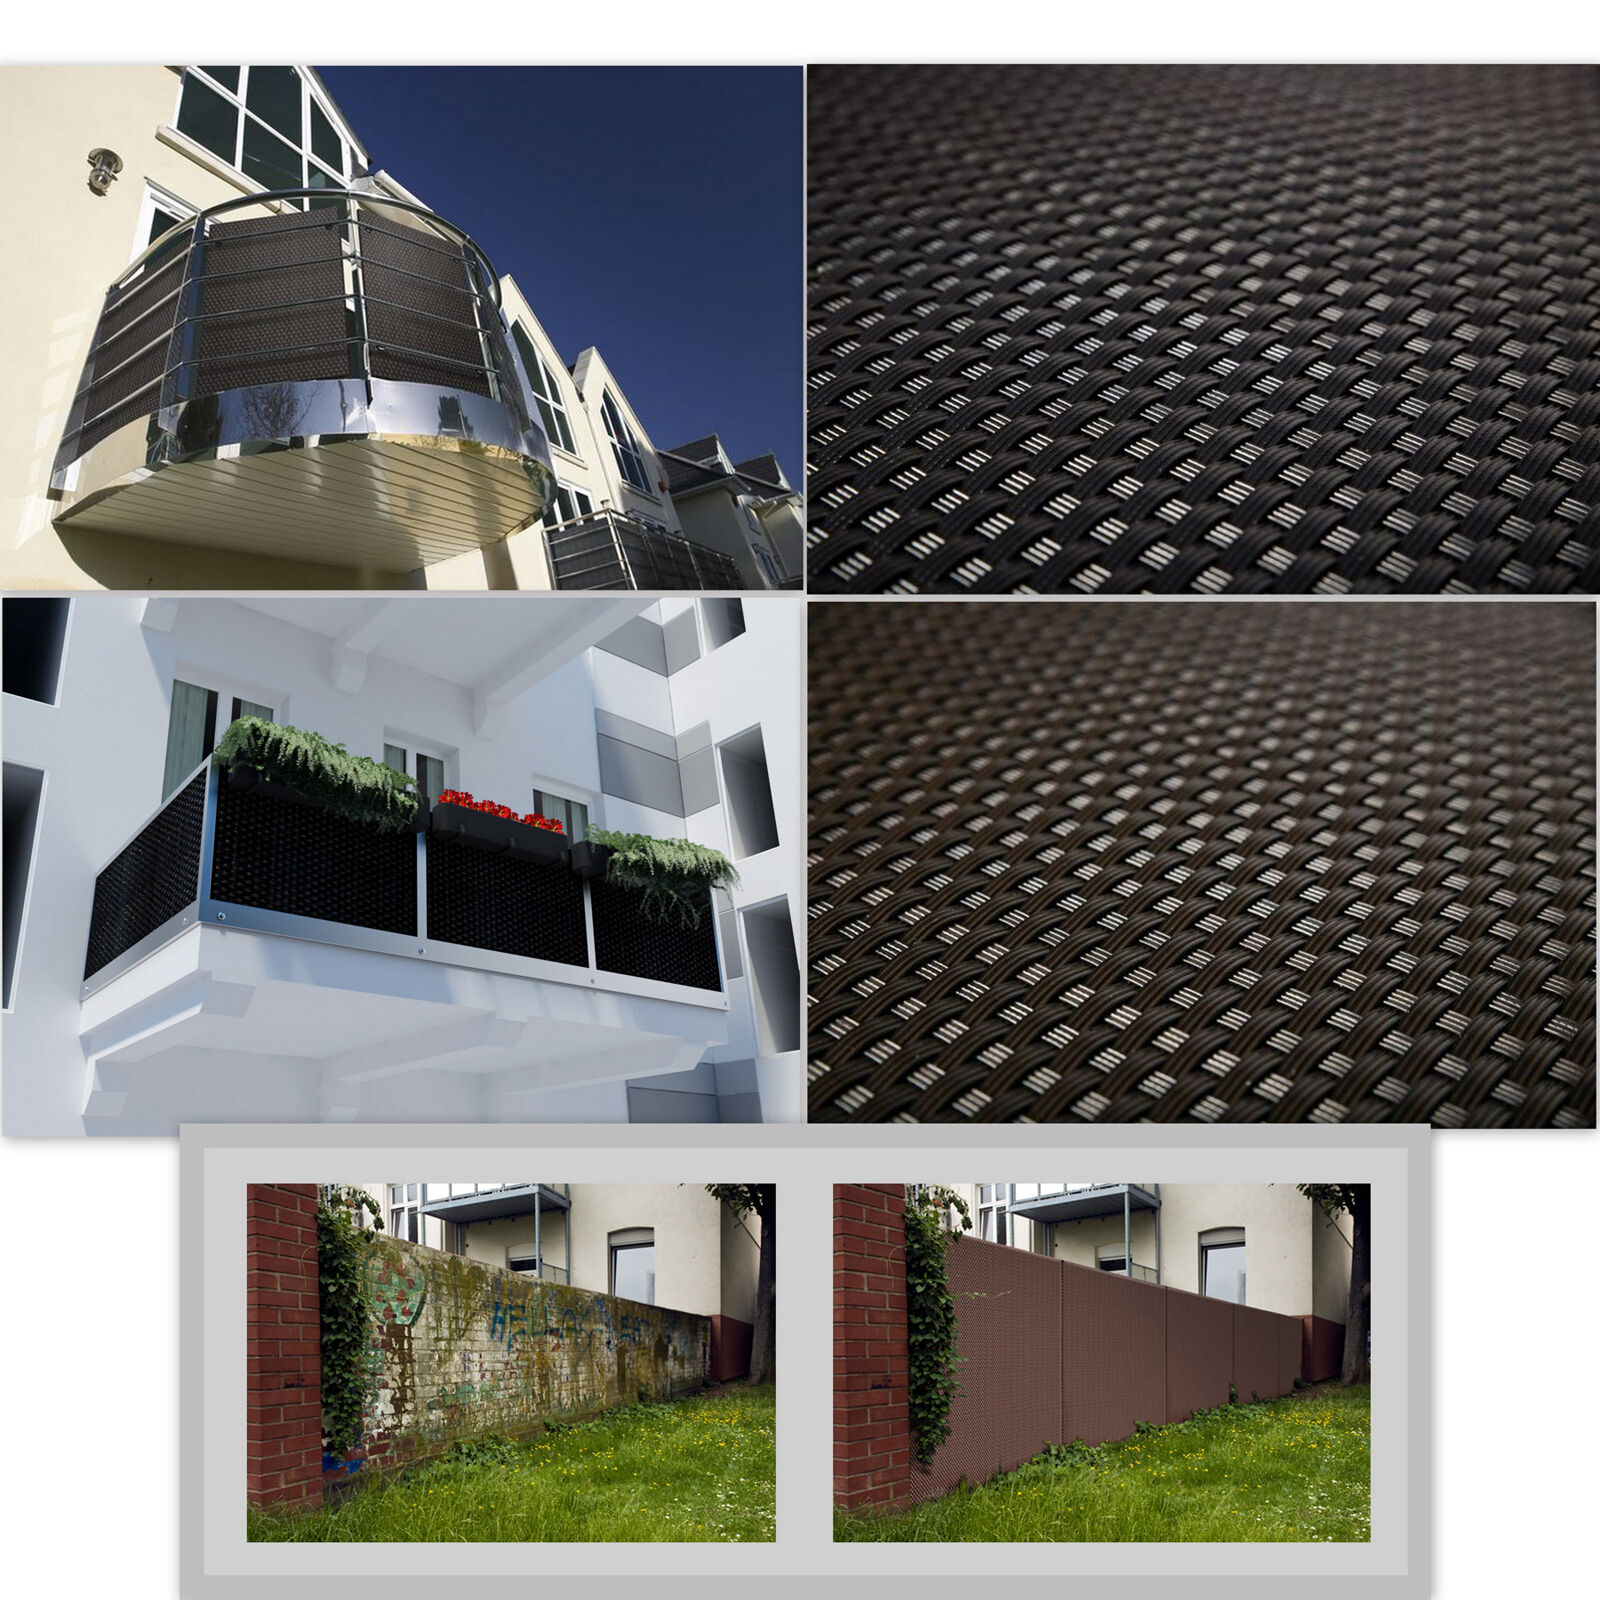 Privacy garden fence panel cover balcony shade mat screen for Balcony covers for privacy